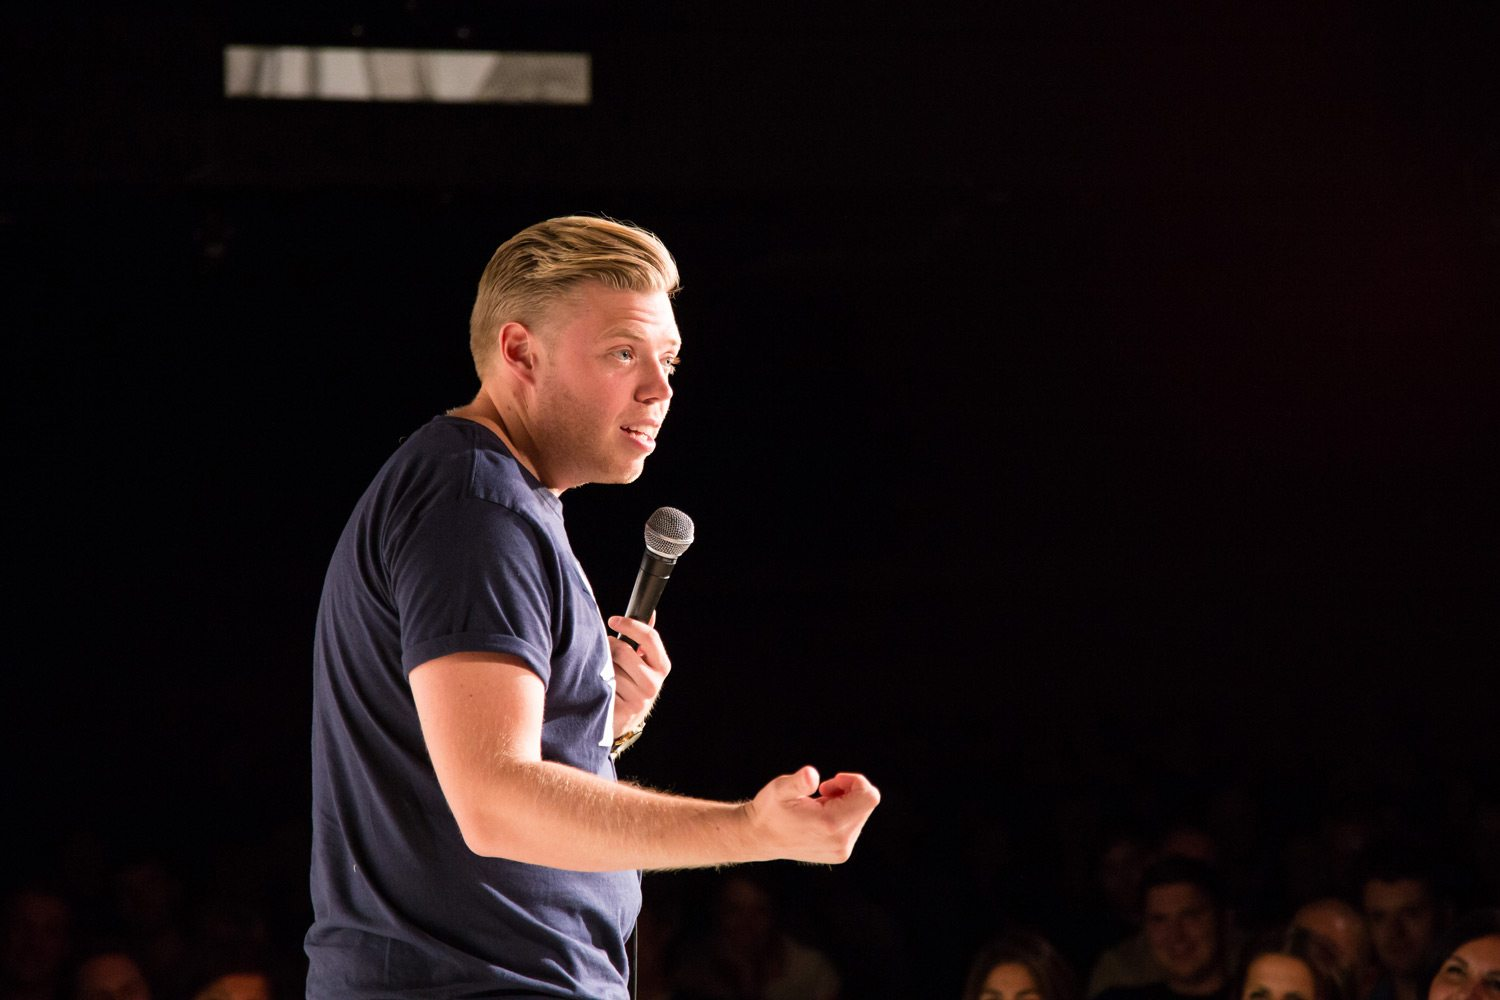 Rob Beckett on stage at The Glee